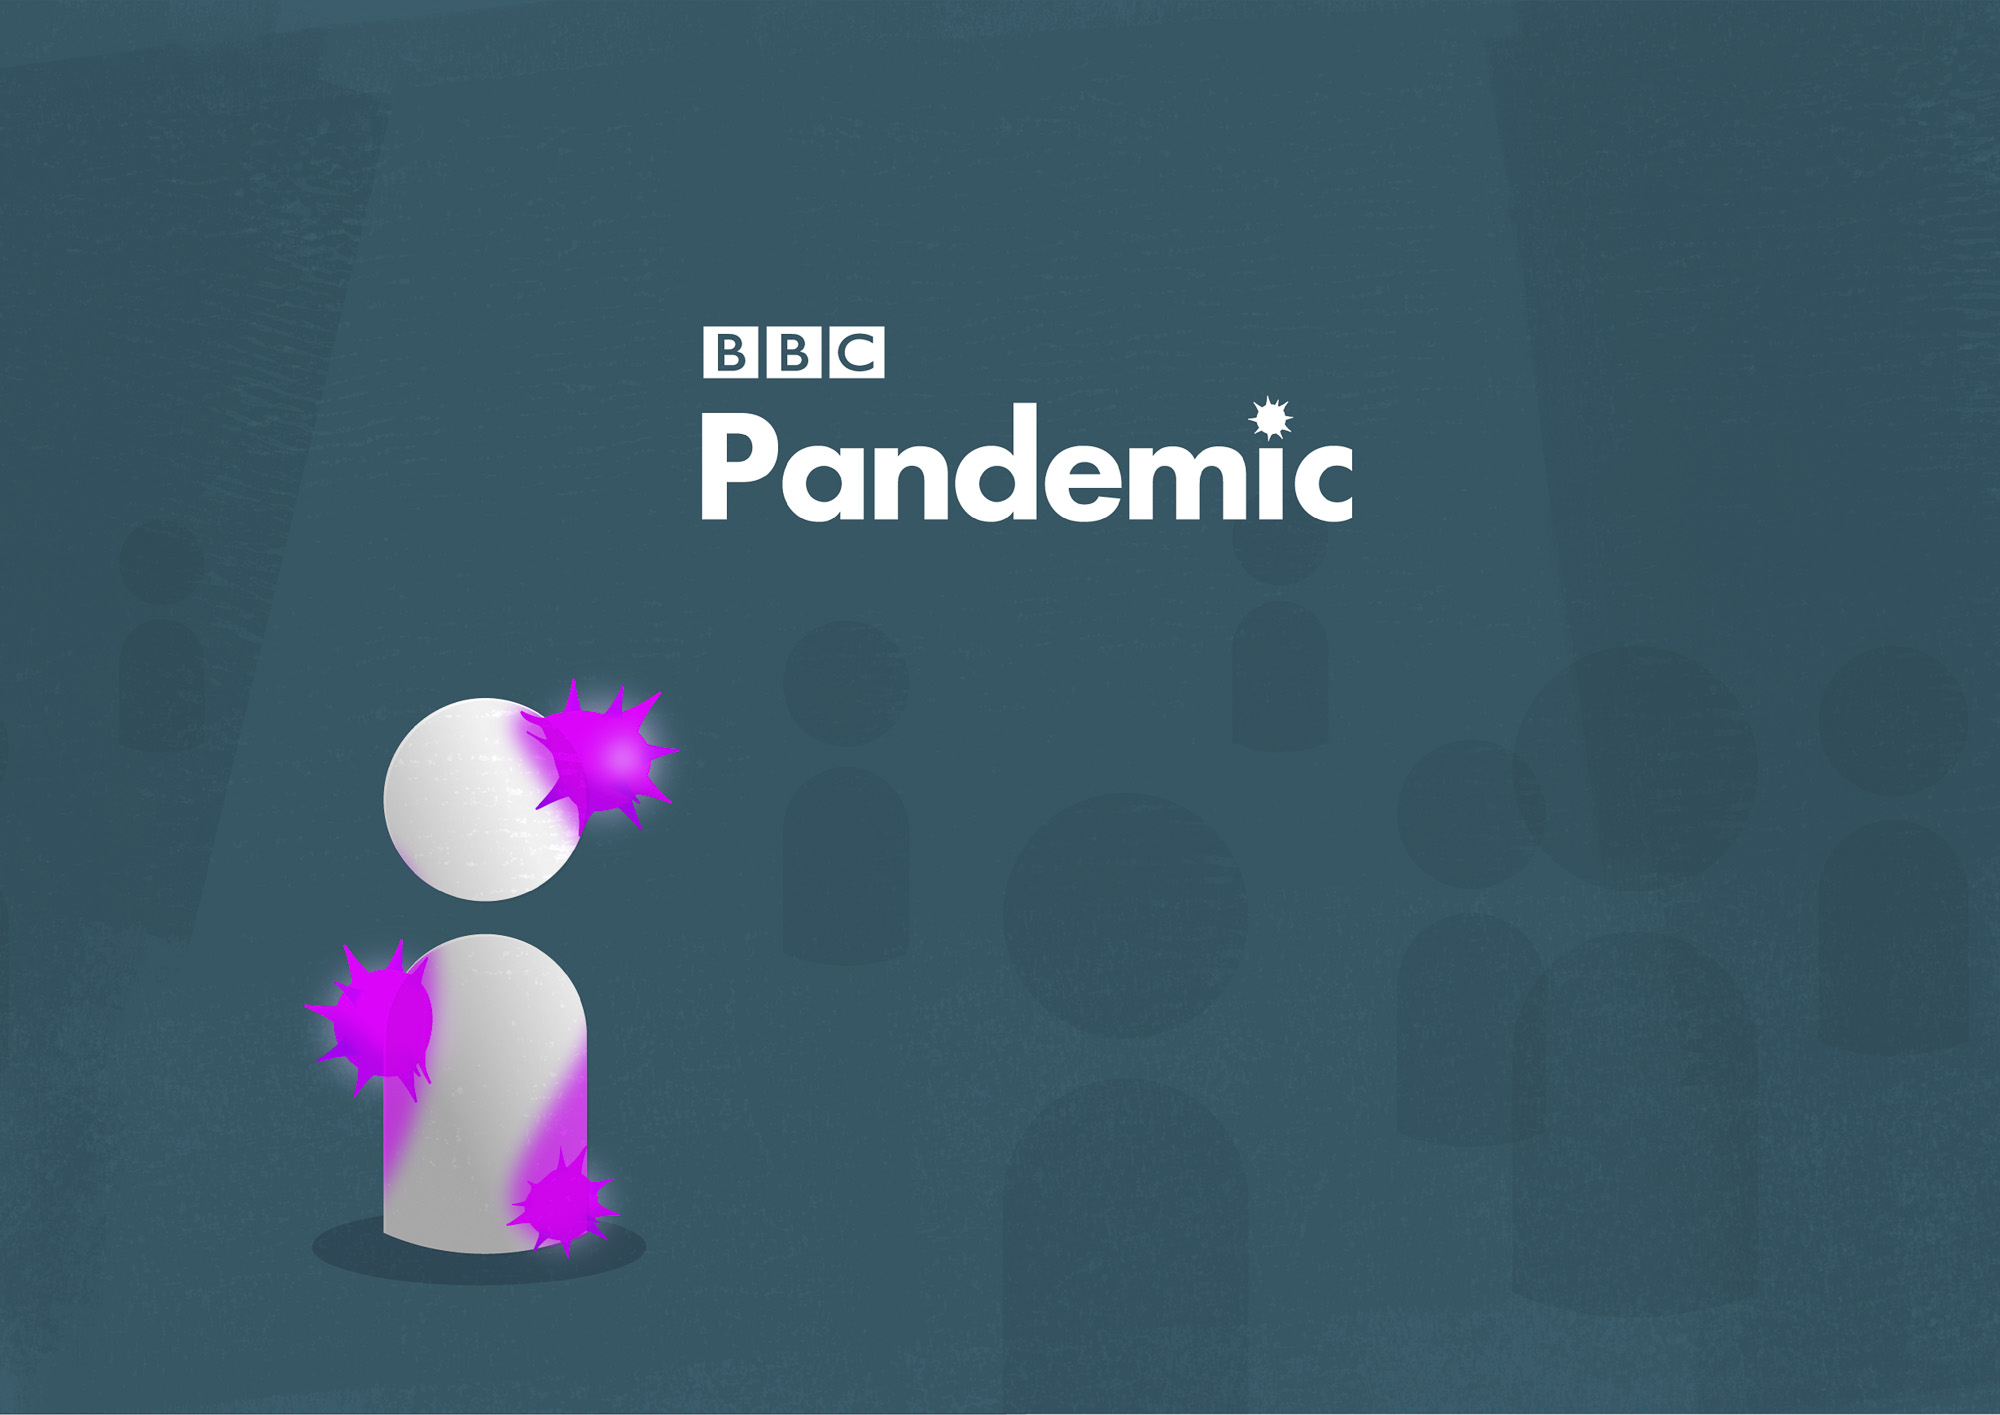 Cover image: Contagion! The BBC Four Pandemic